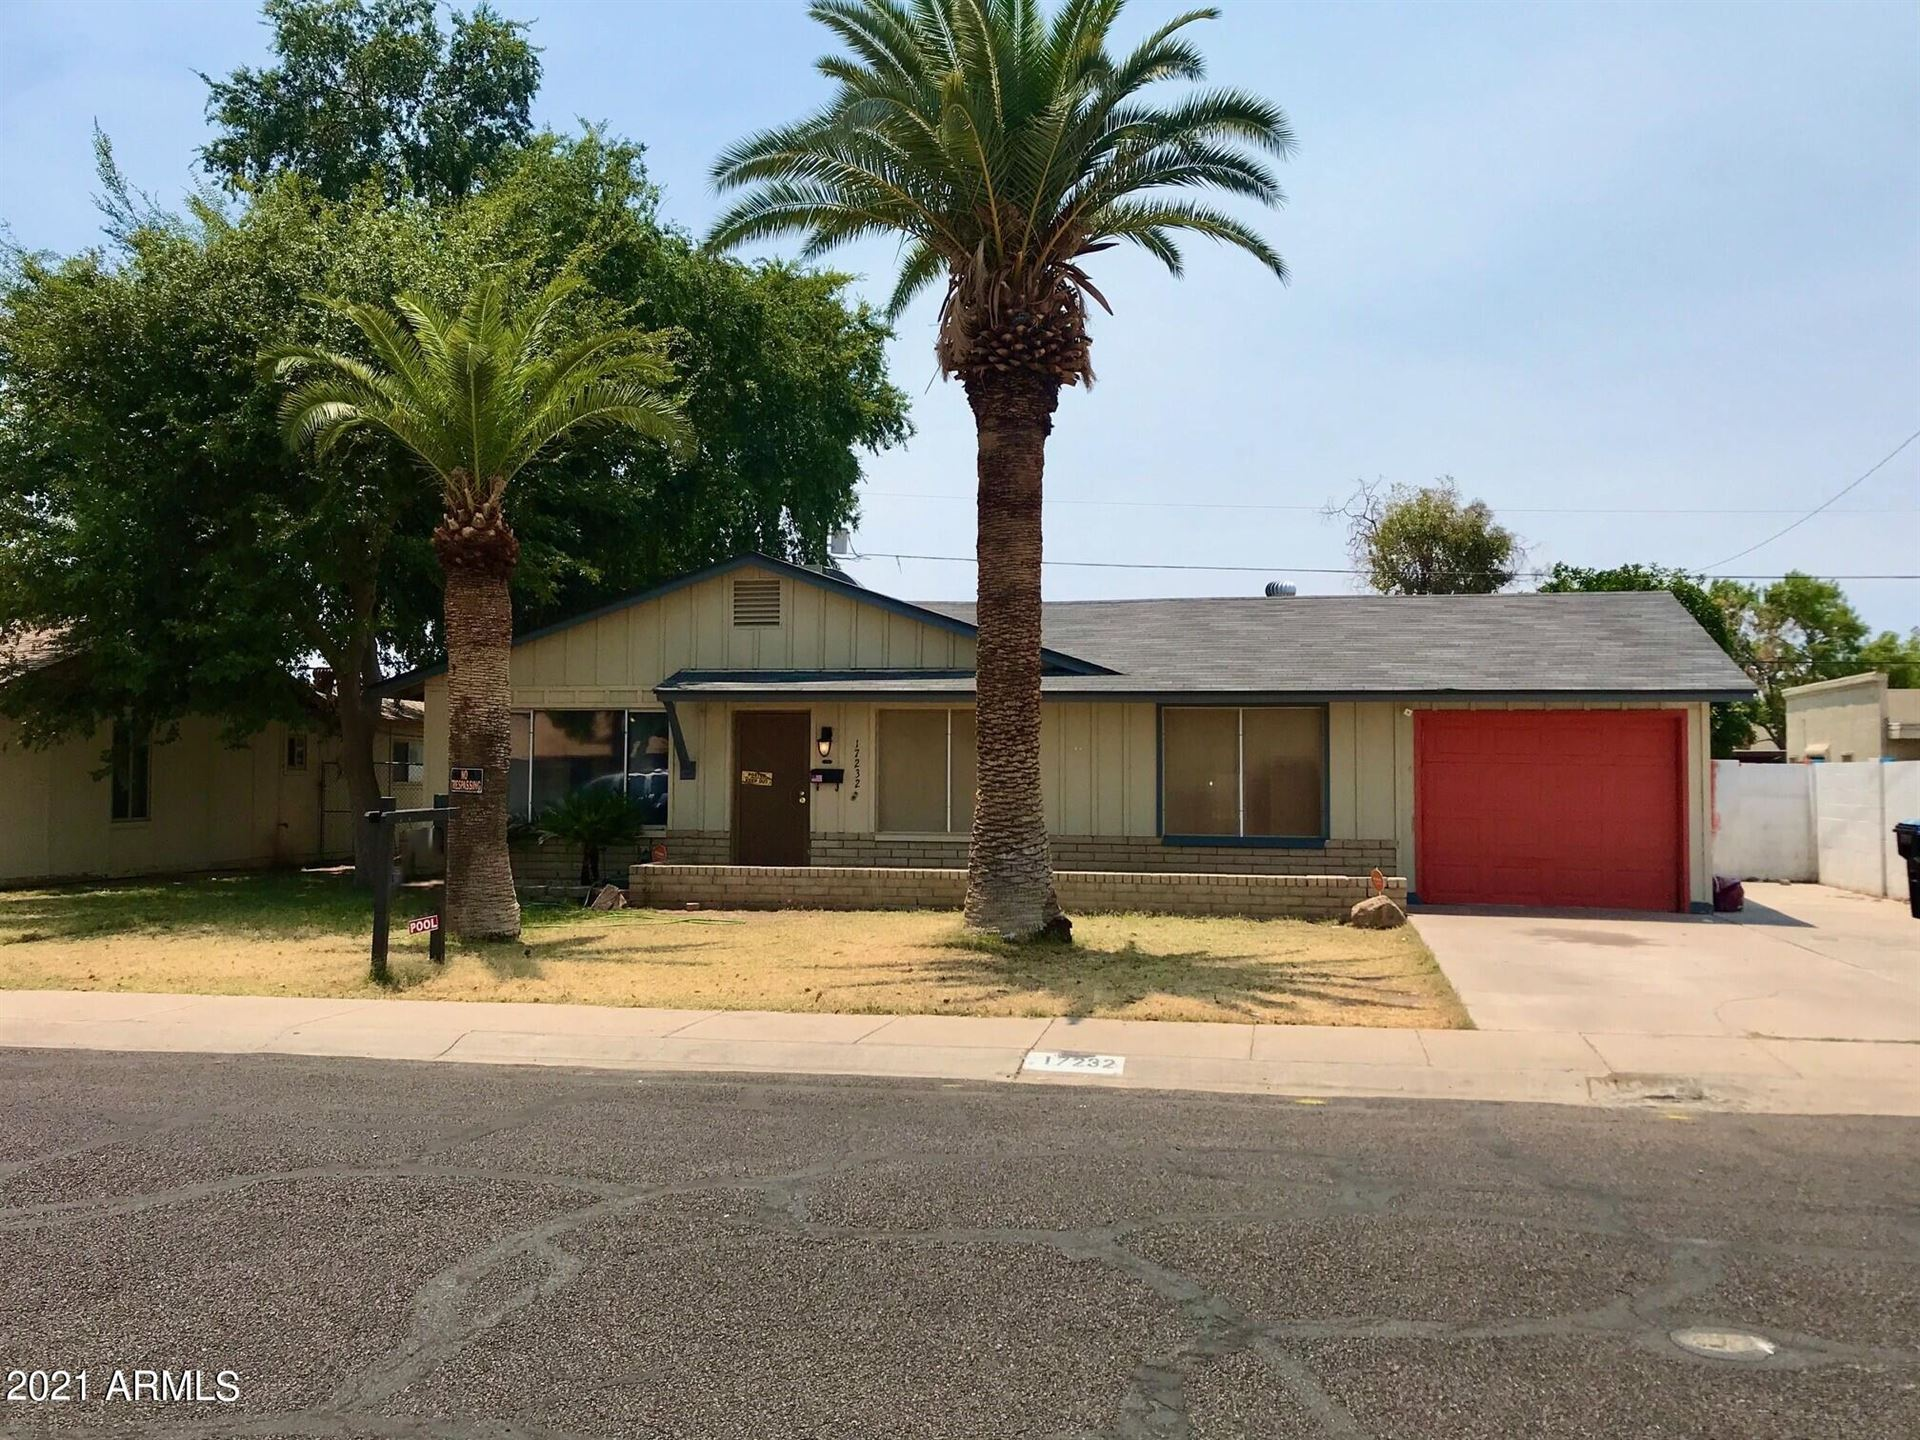 17232 N 16TH Avenue, Phoenix, AZ 85023 - MLS#: 6170946